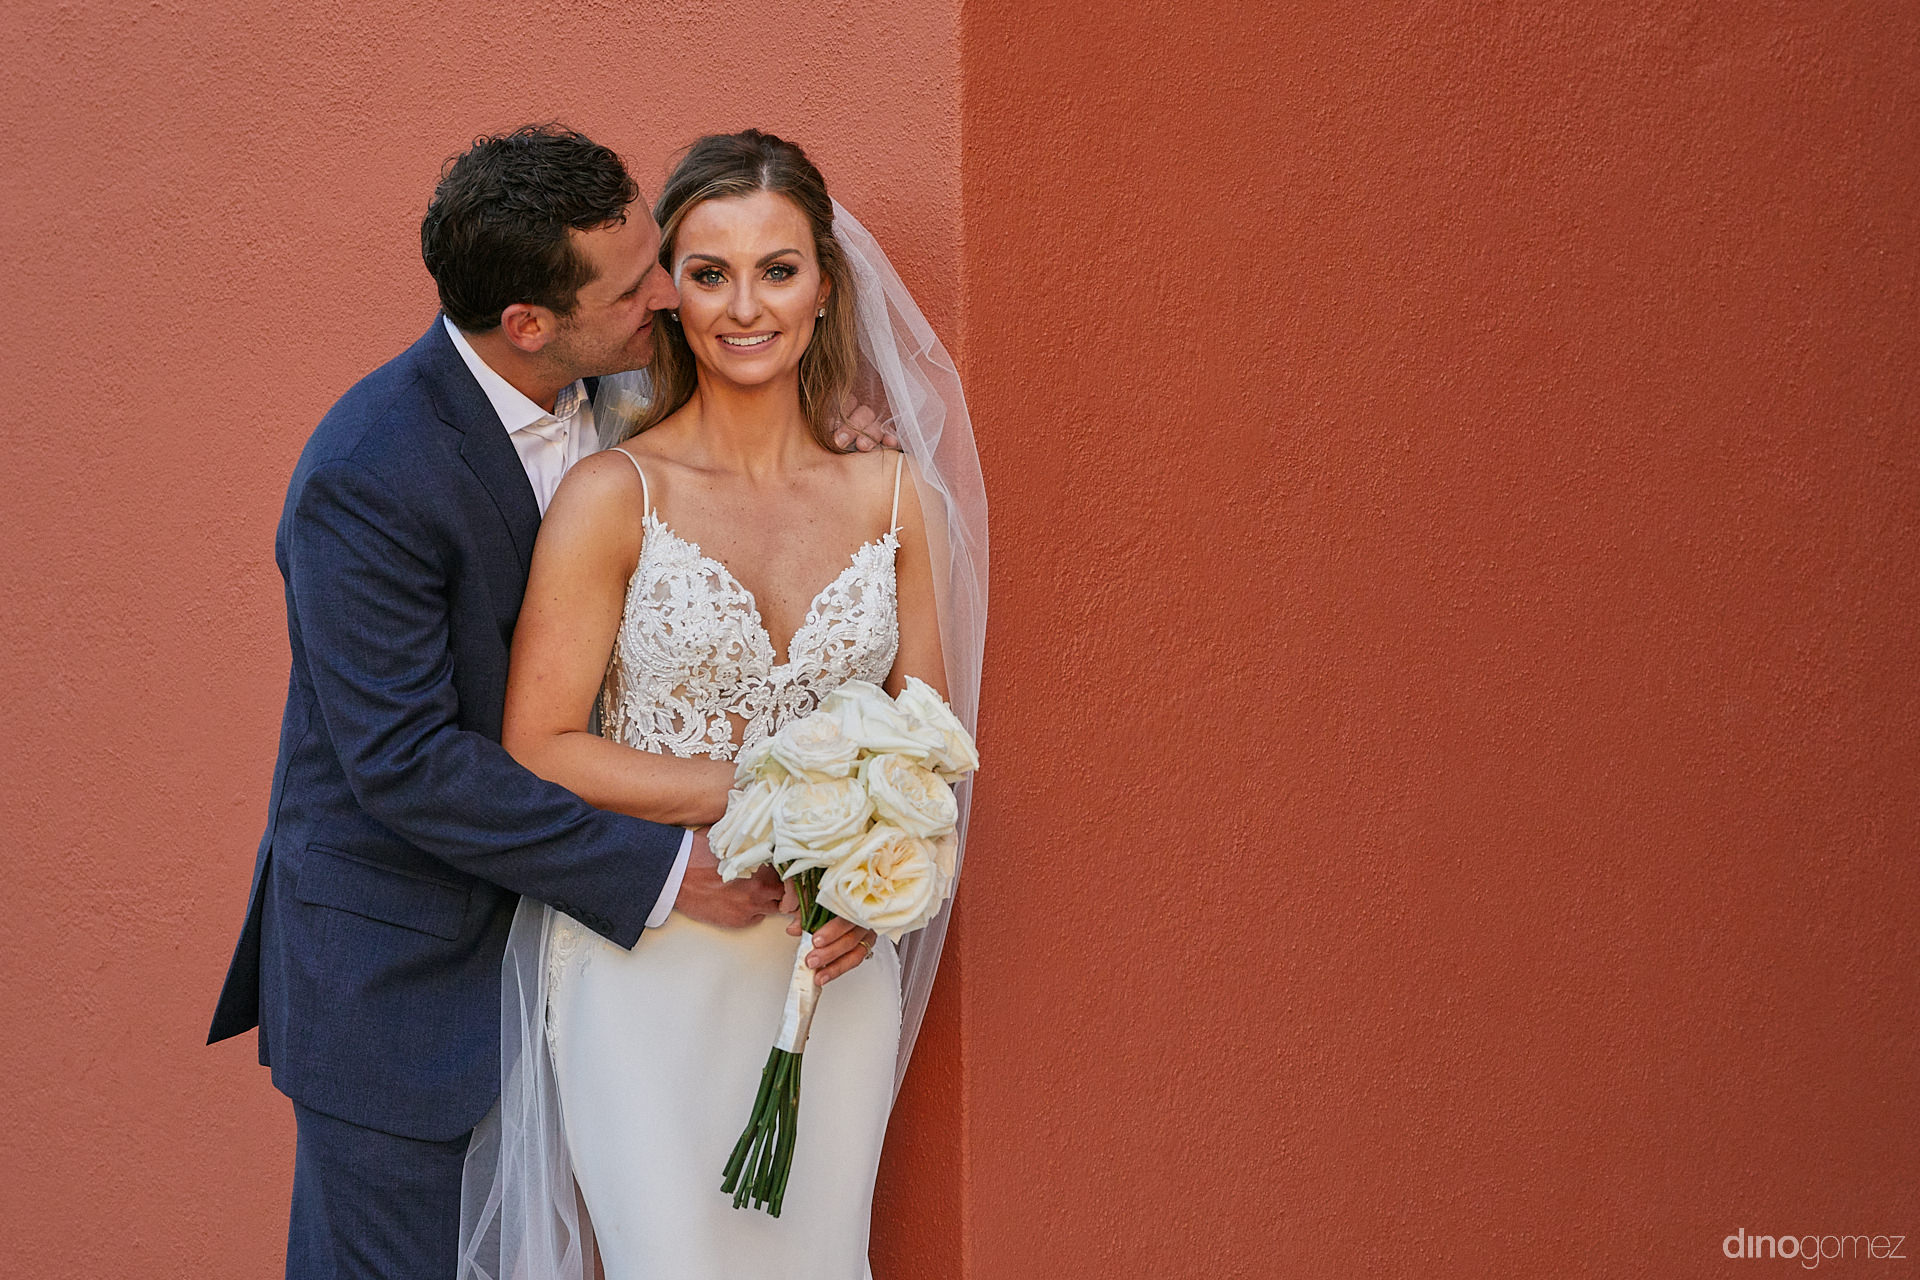 Professional Videographer San José Del Cabo - Luxury Wedding Photographer In Cabo Dino Gomez - C&T